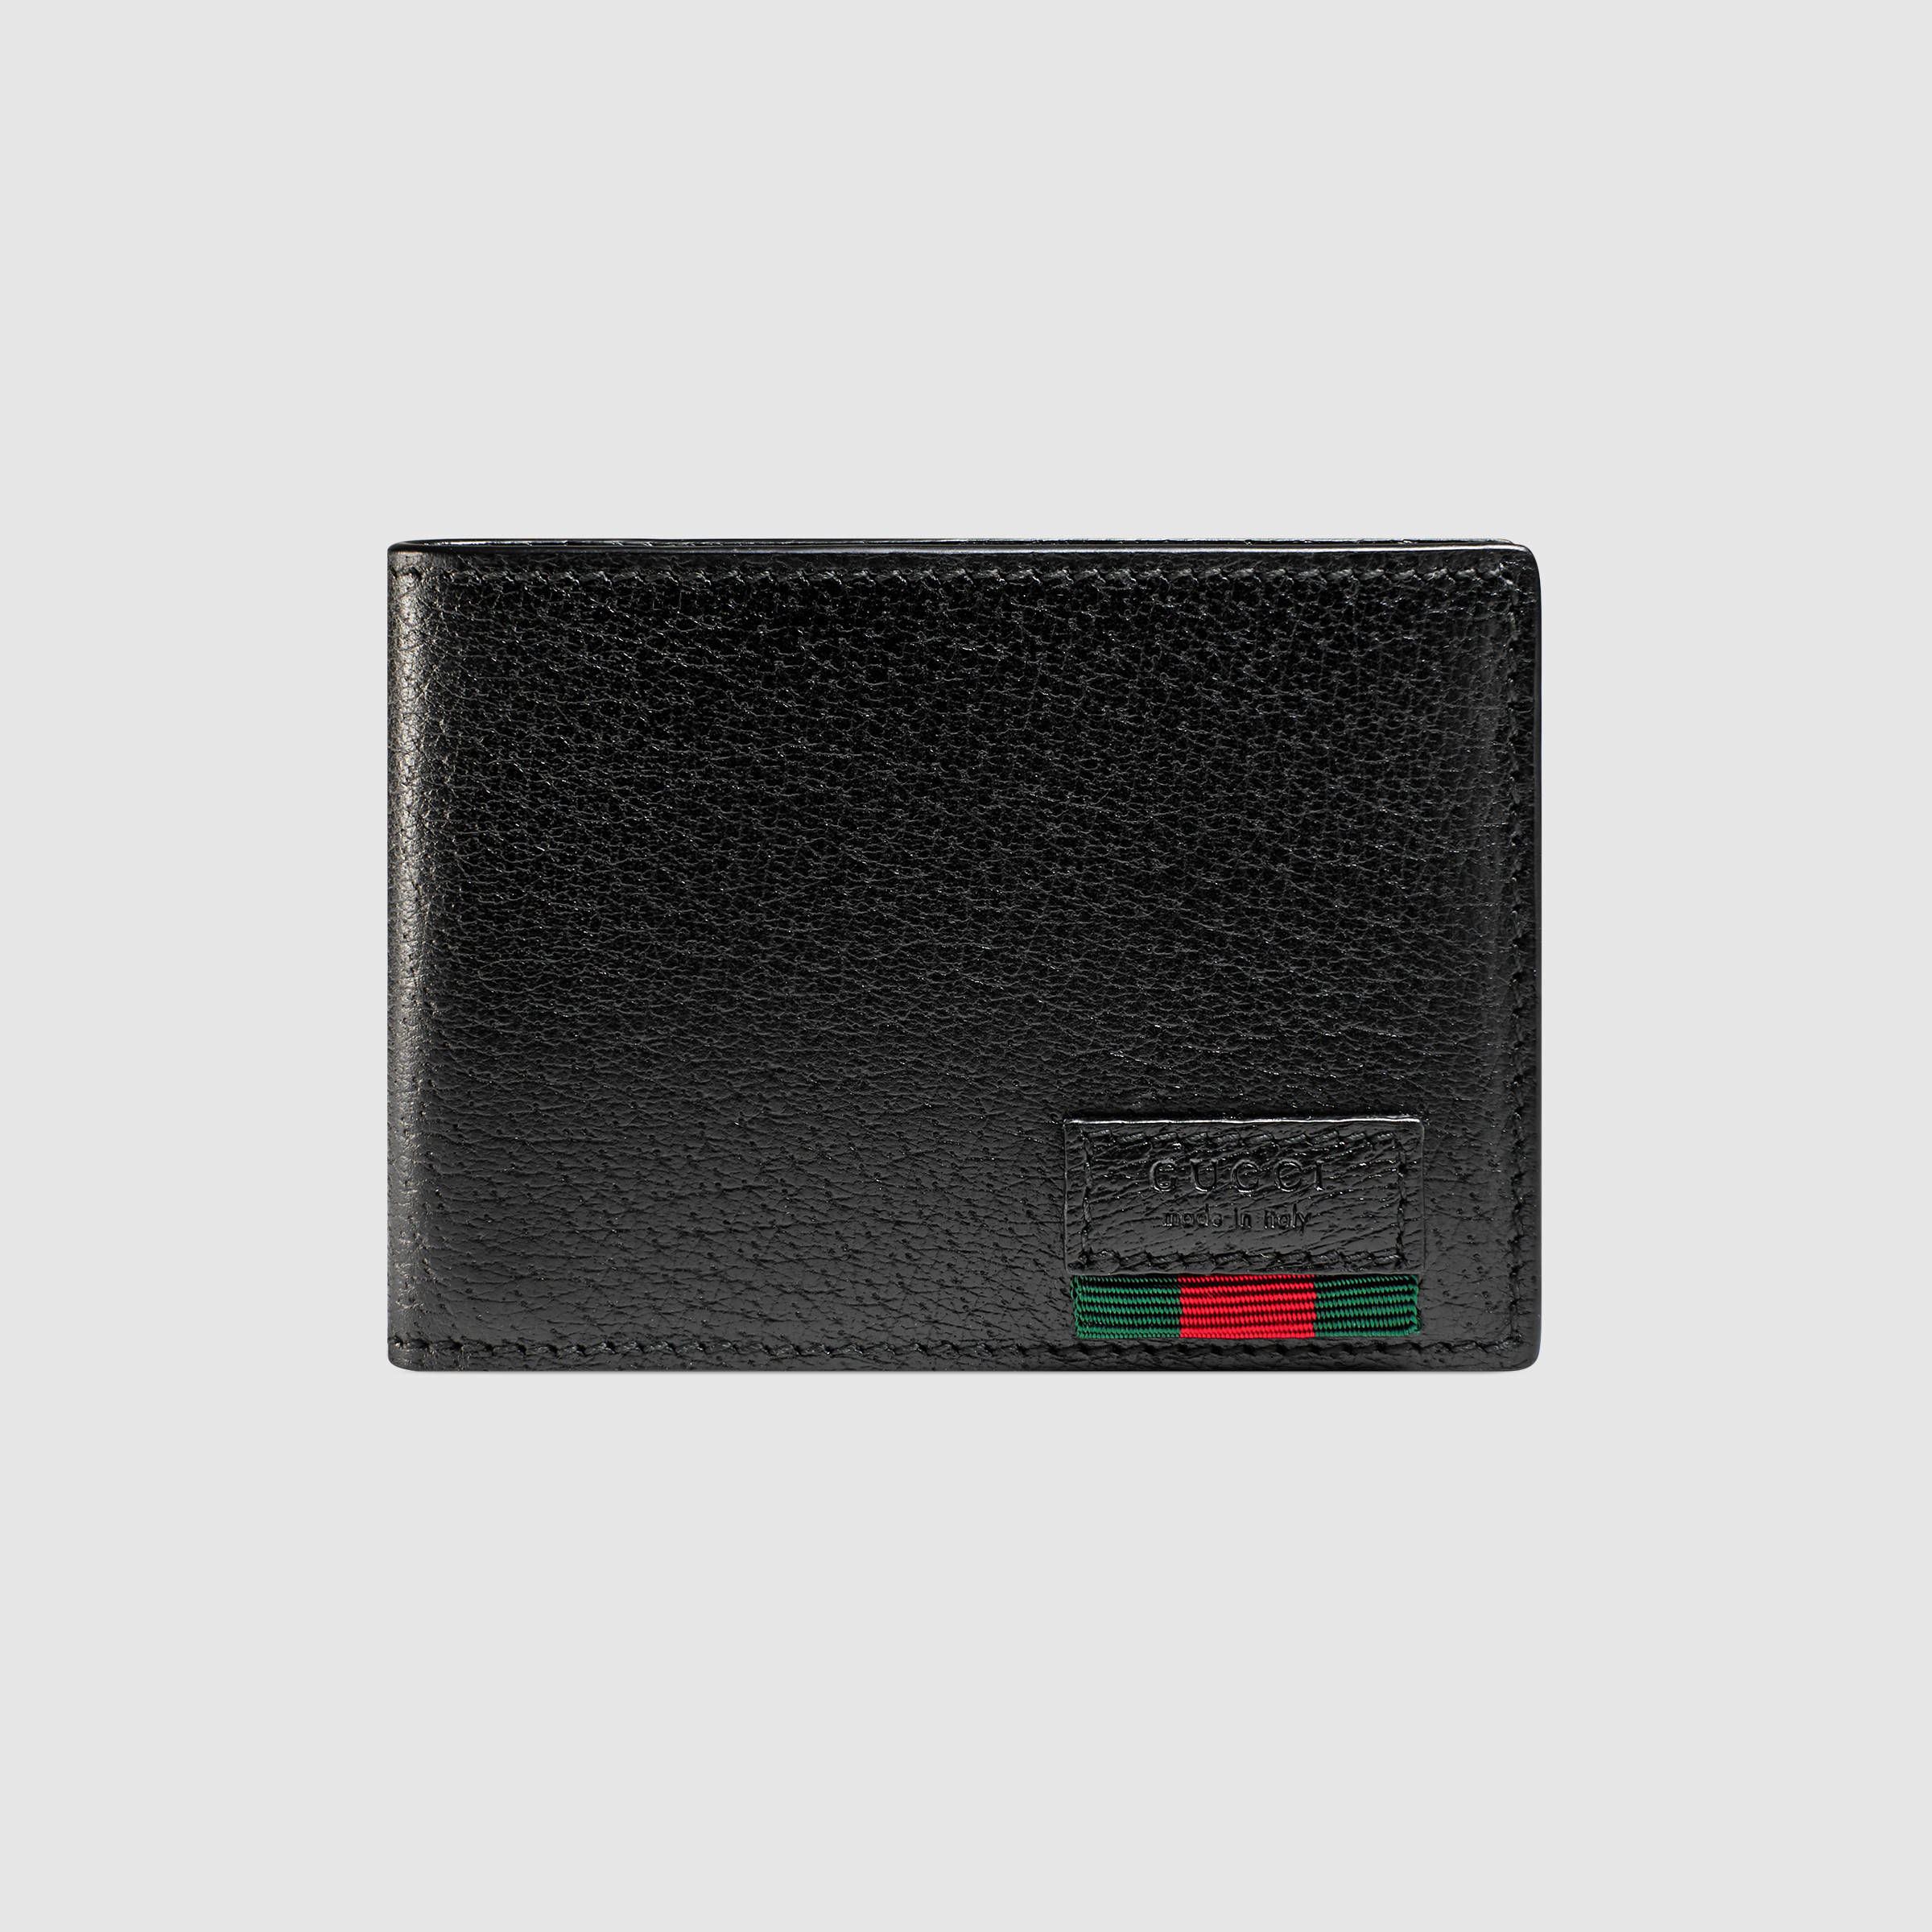 603d8872783f Gucci Leather Bi-fold Wallet With Web | Stanford Center for ...